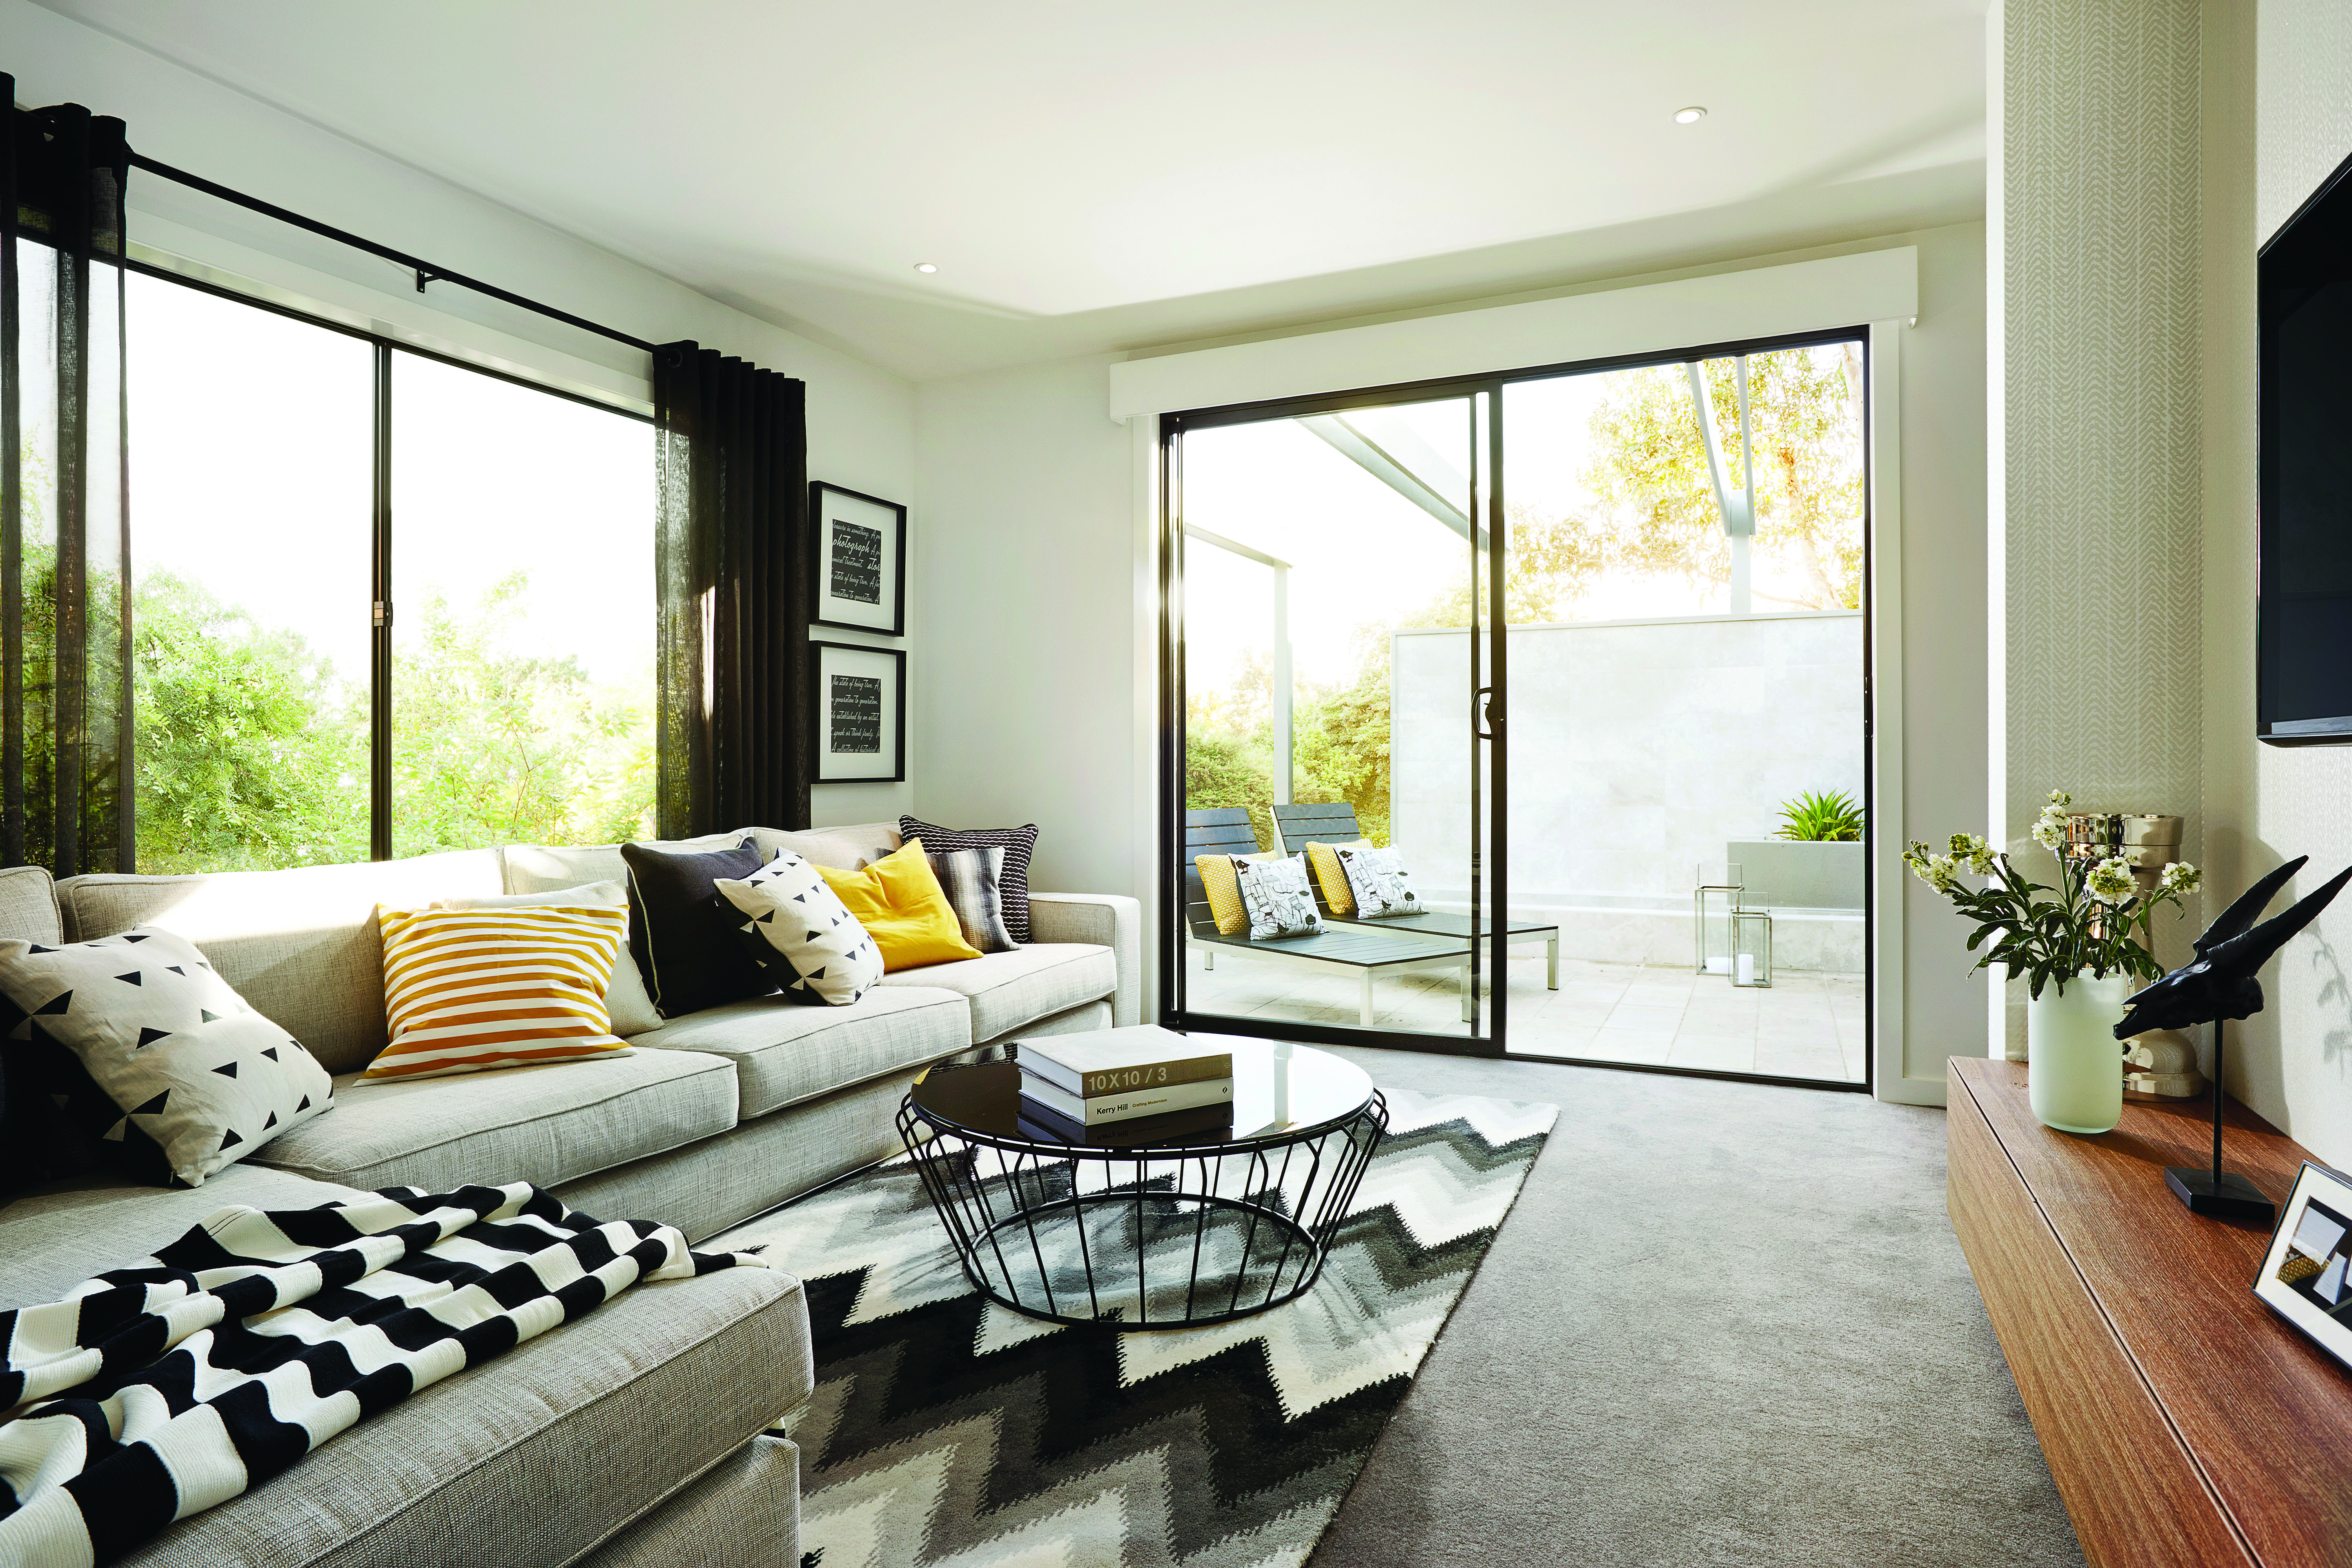 How to install a 2-panel sliding door